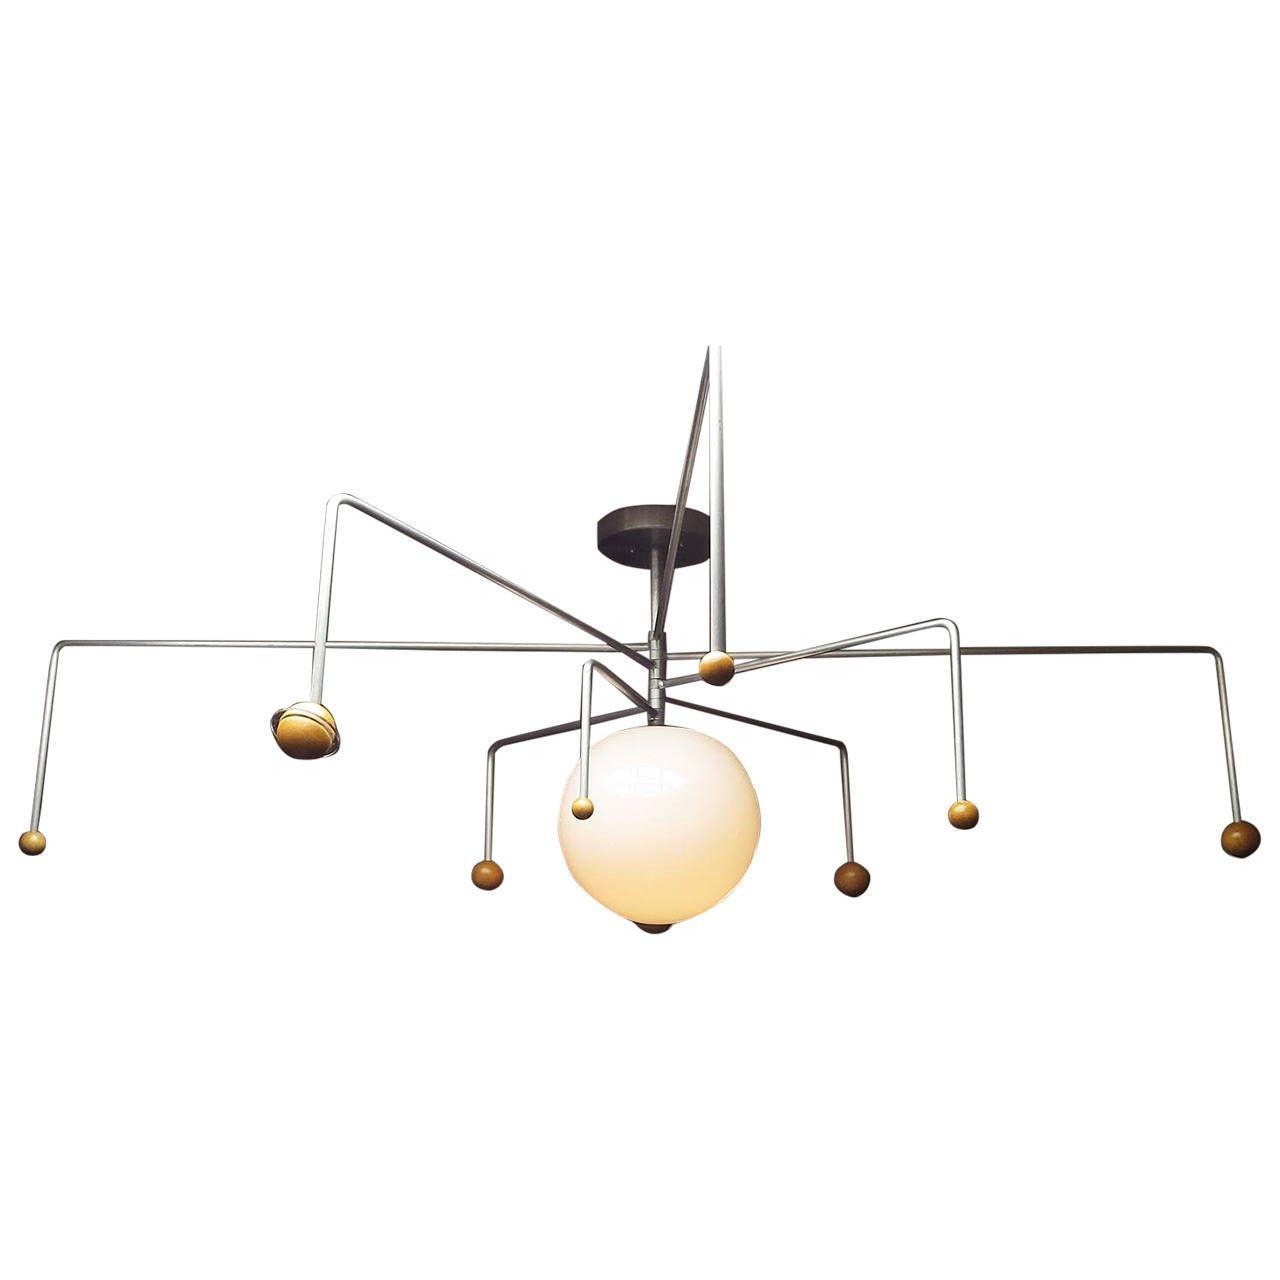 Pin By George Bebensee On 1stdibs Pendant Lights In